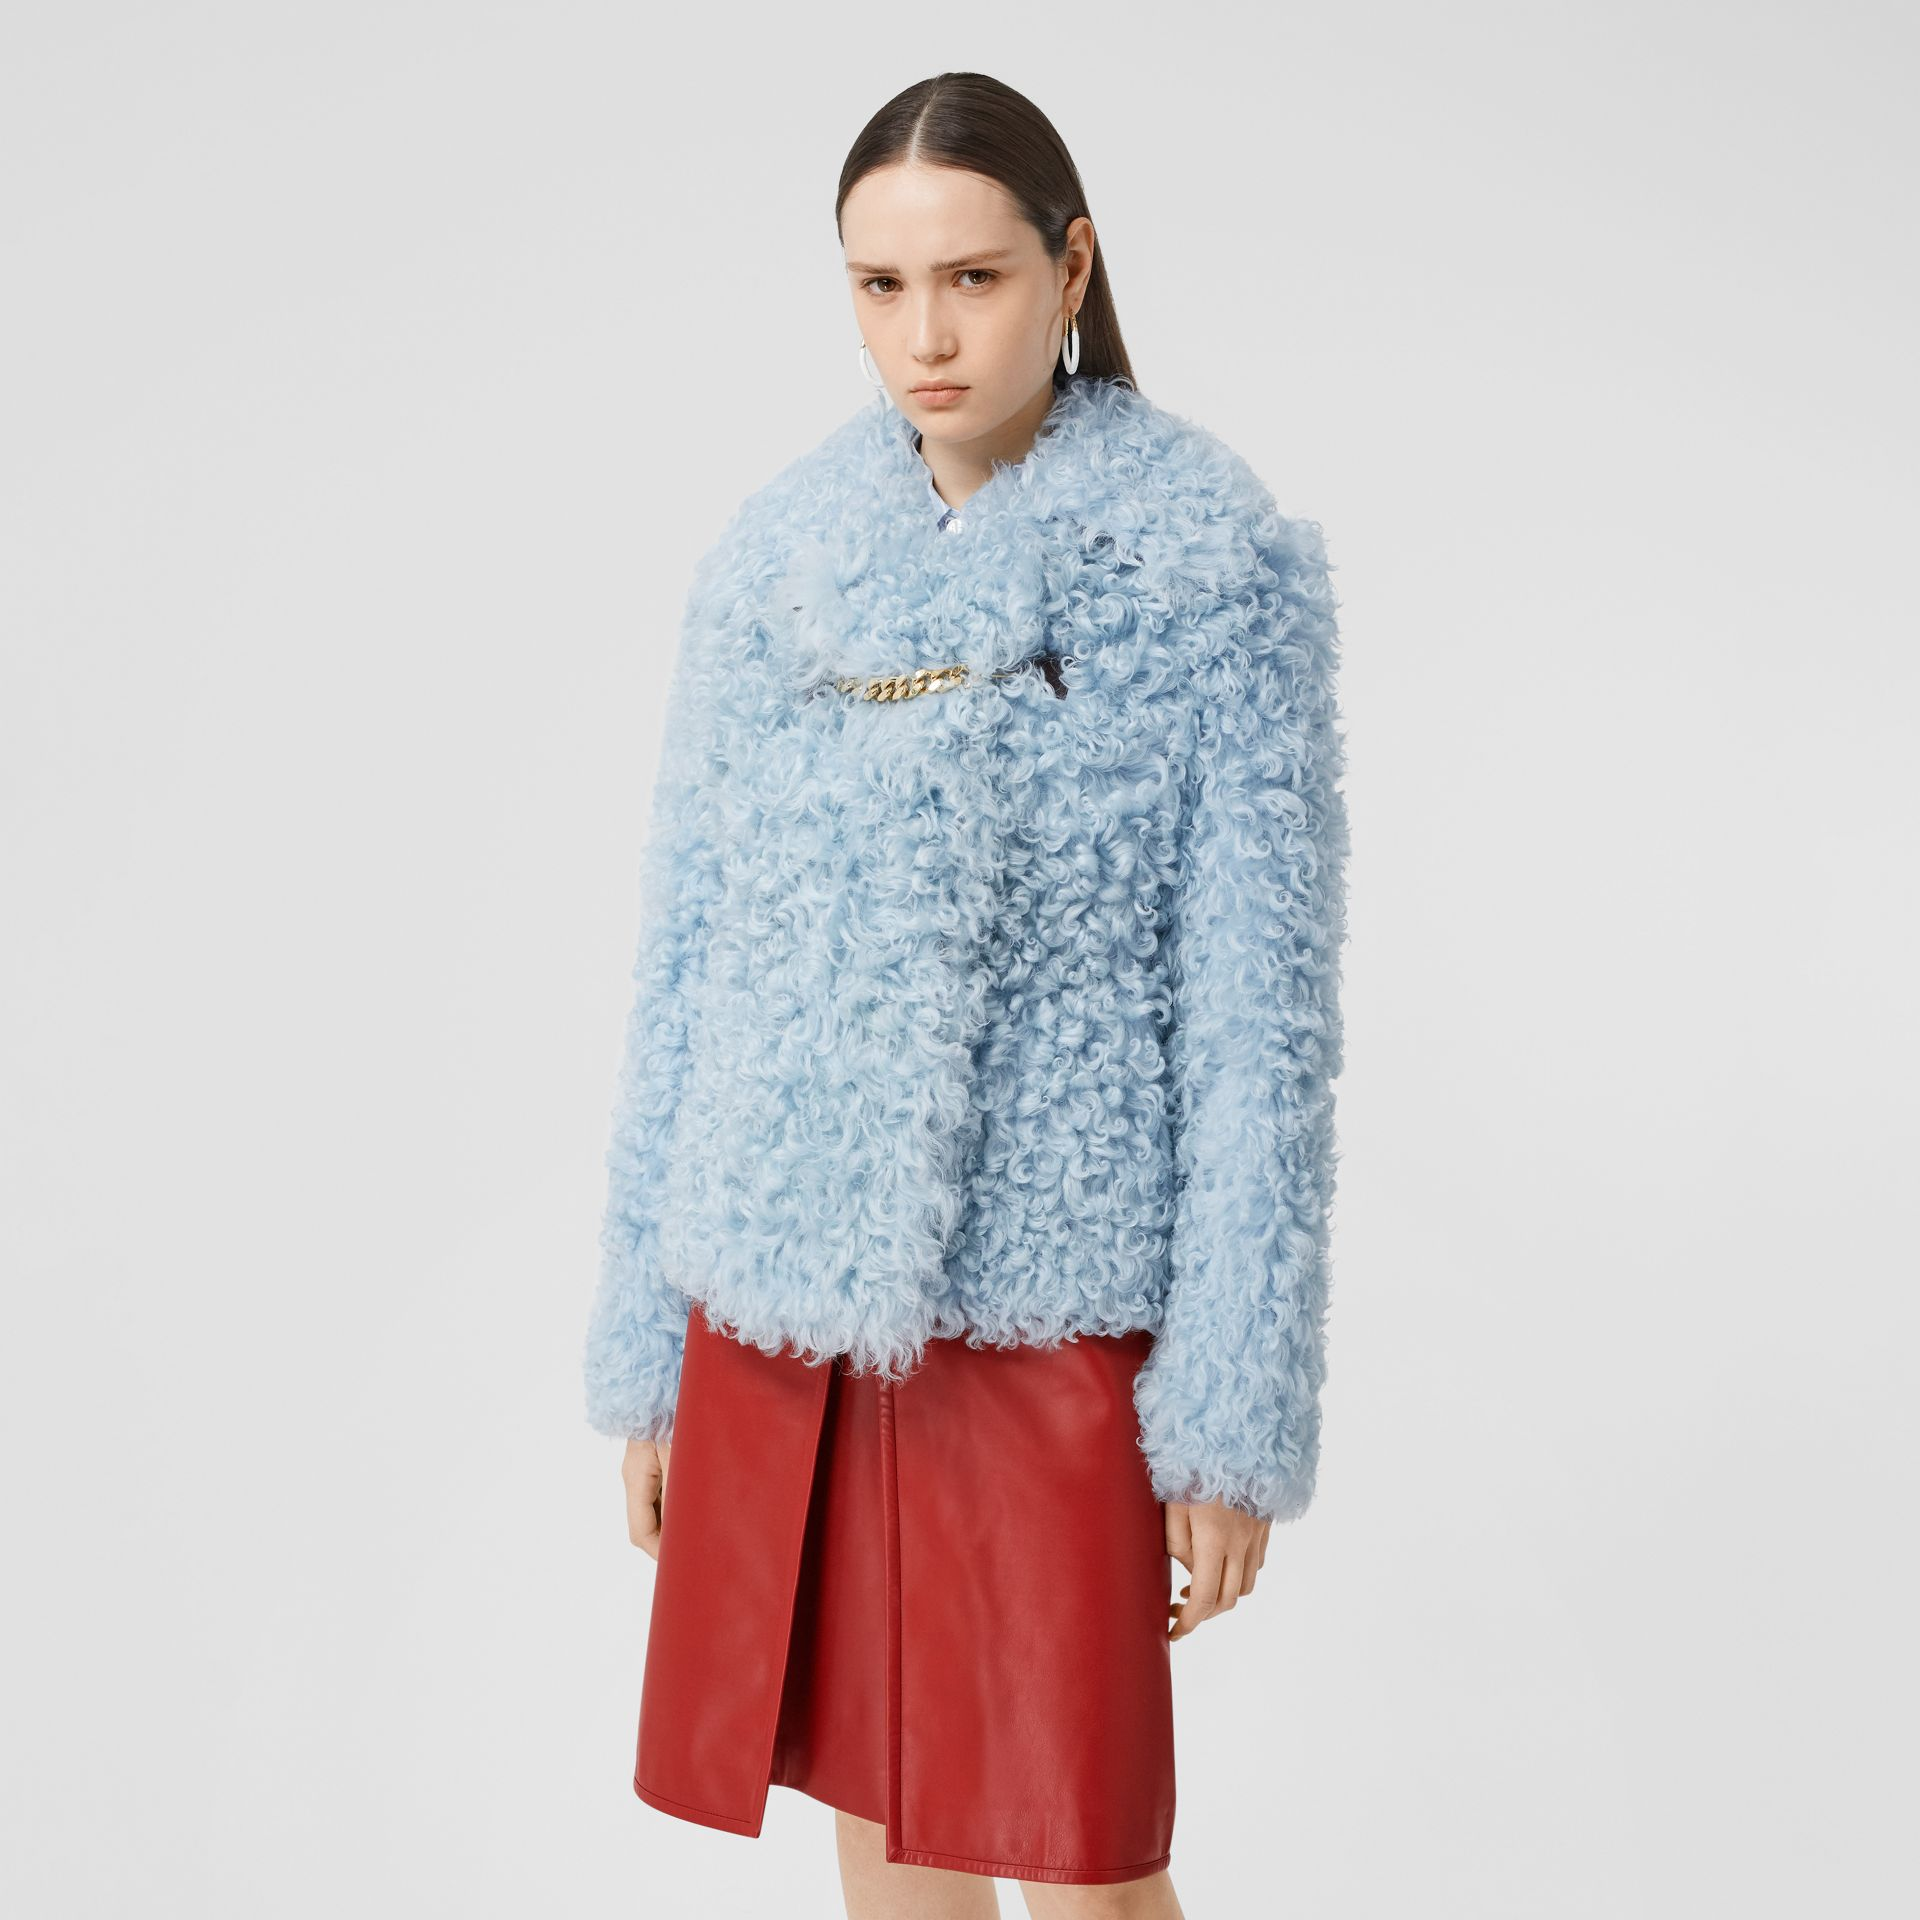 Chain Detail Shearling Jacket in Pale Blue - Women | Burberry United Kingdom - gallery image 5